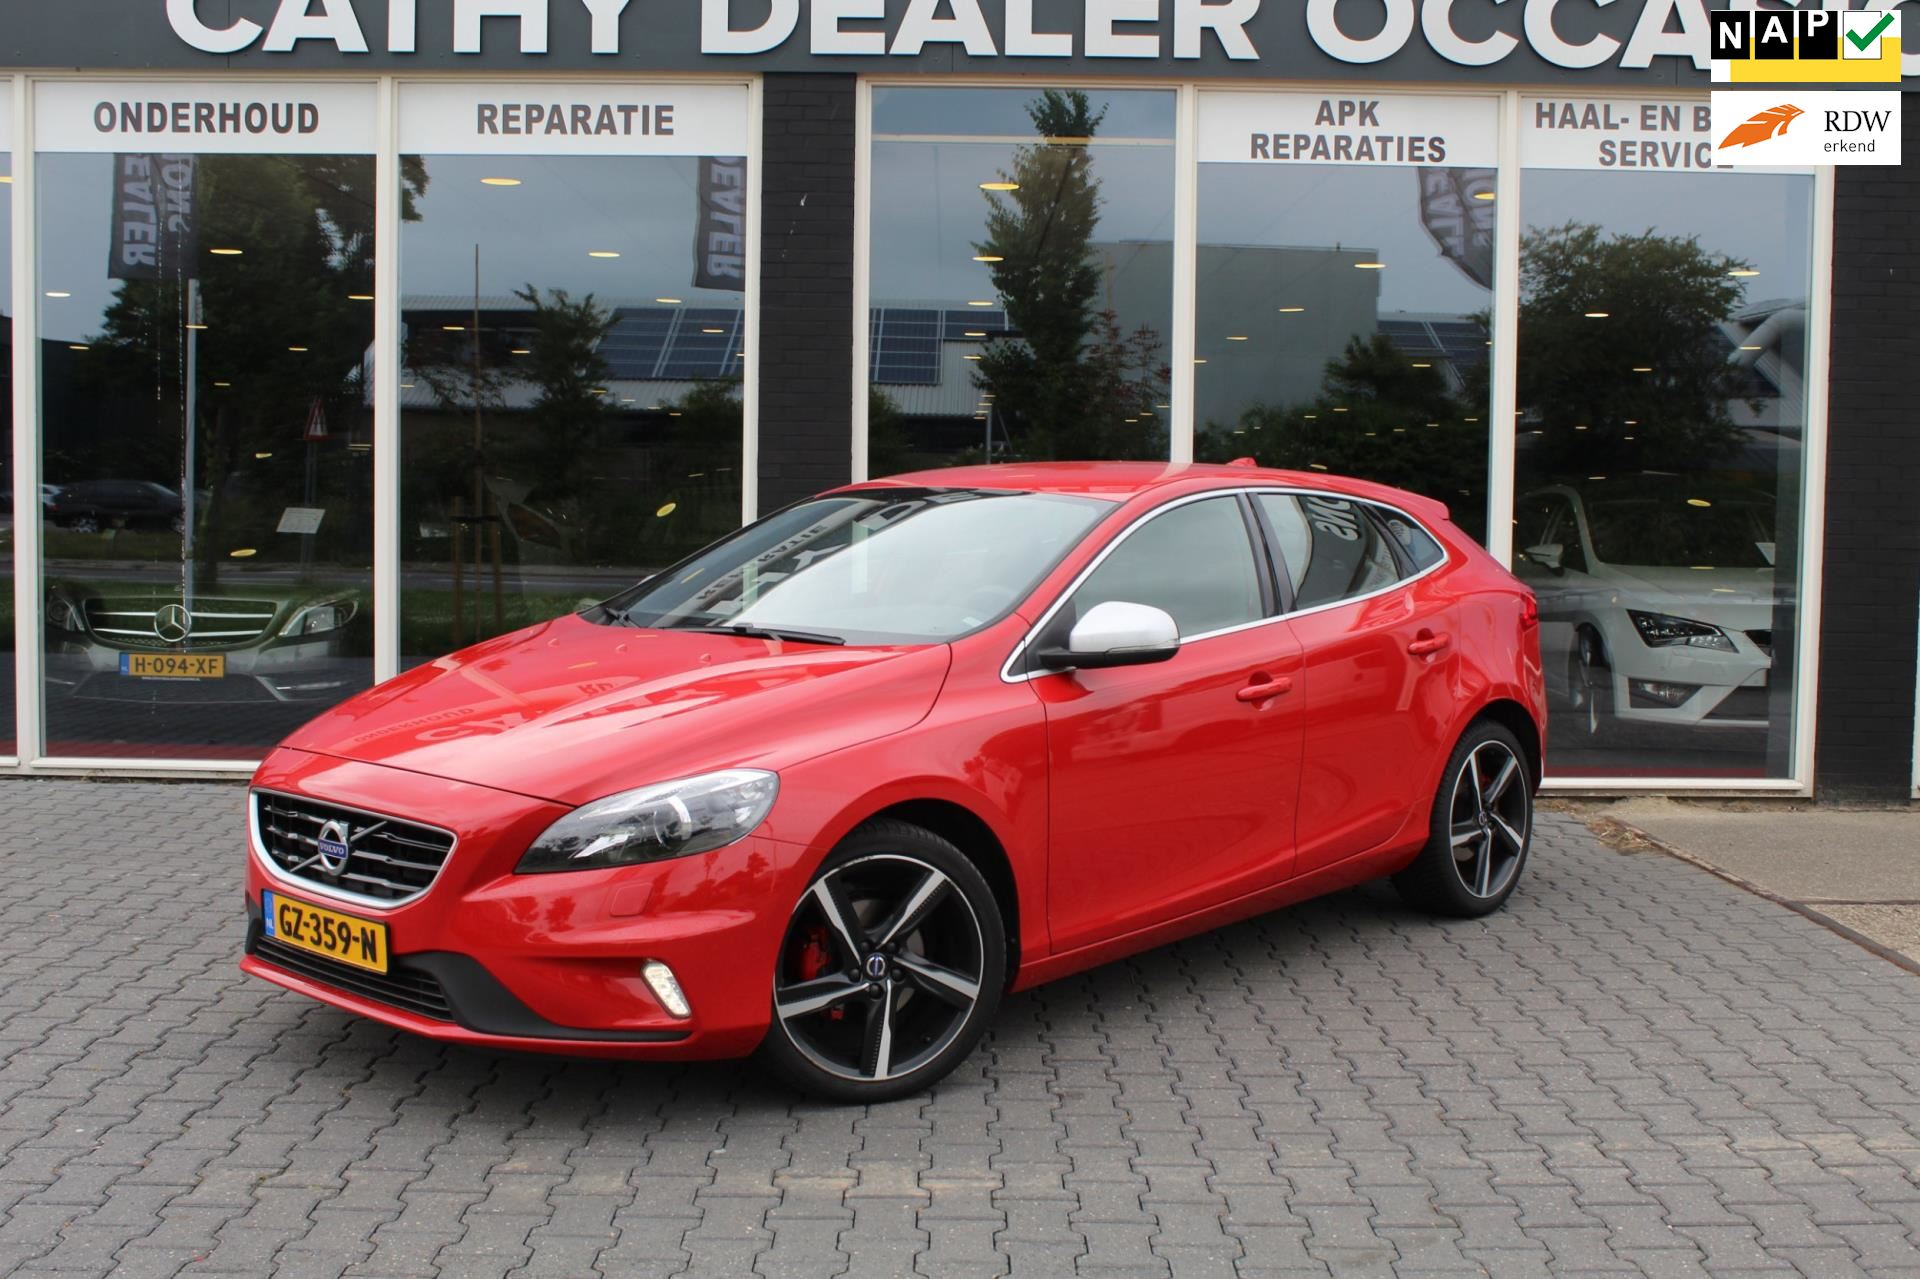 Volvo V40 occasion - Cathy Dealer Occasions